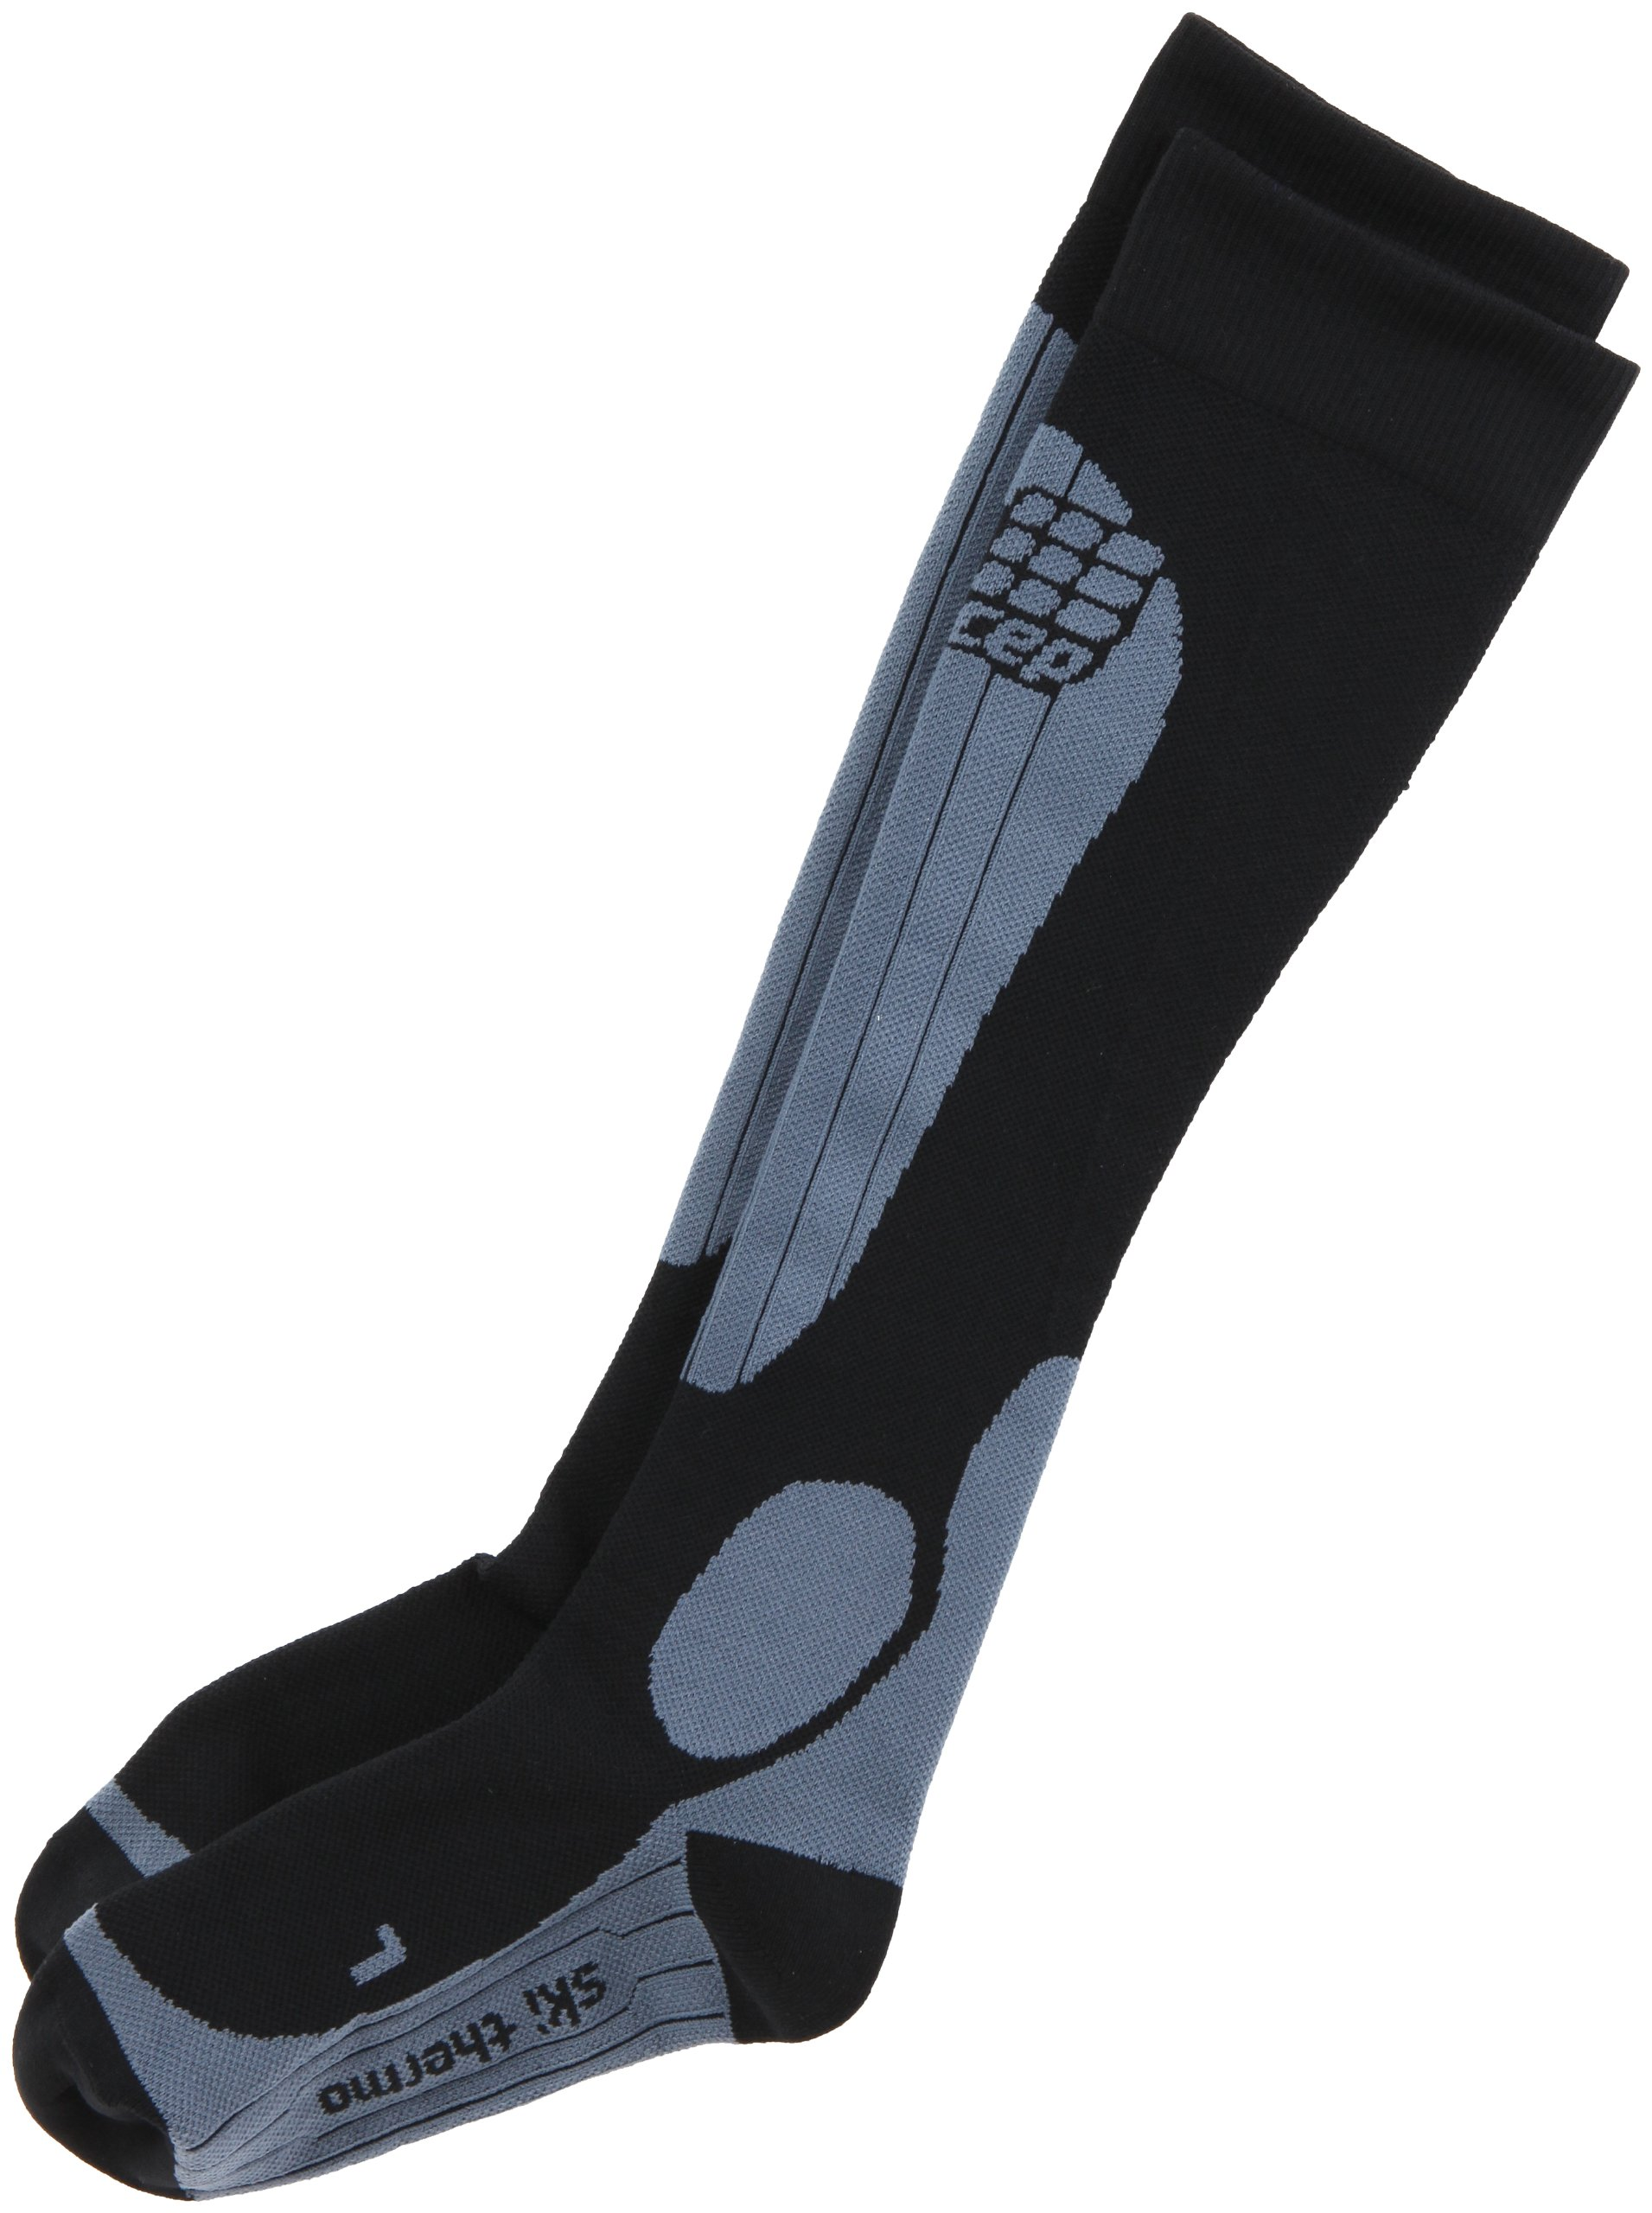 CEP Women's Progressive+ Thermo Ski Socks, Size IV (Calf 15.5-17.5-Inch), Black/Grey